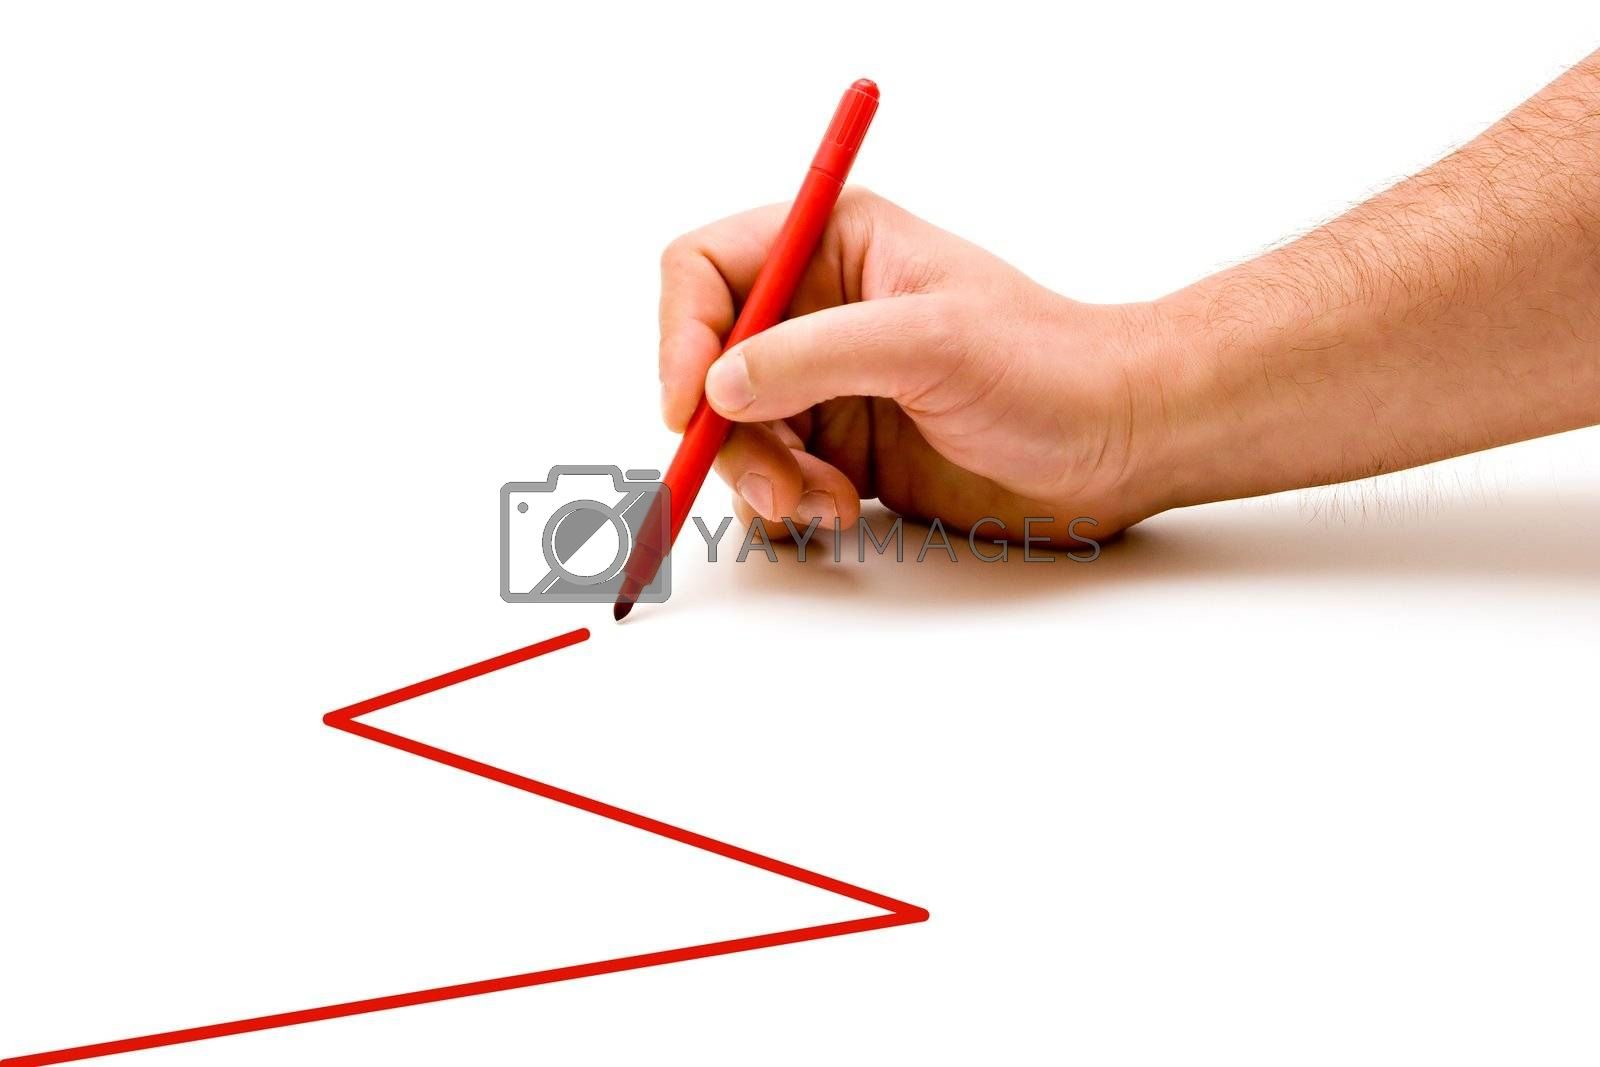 Drawing graphic with red marker on white paper.